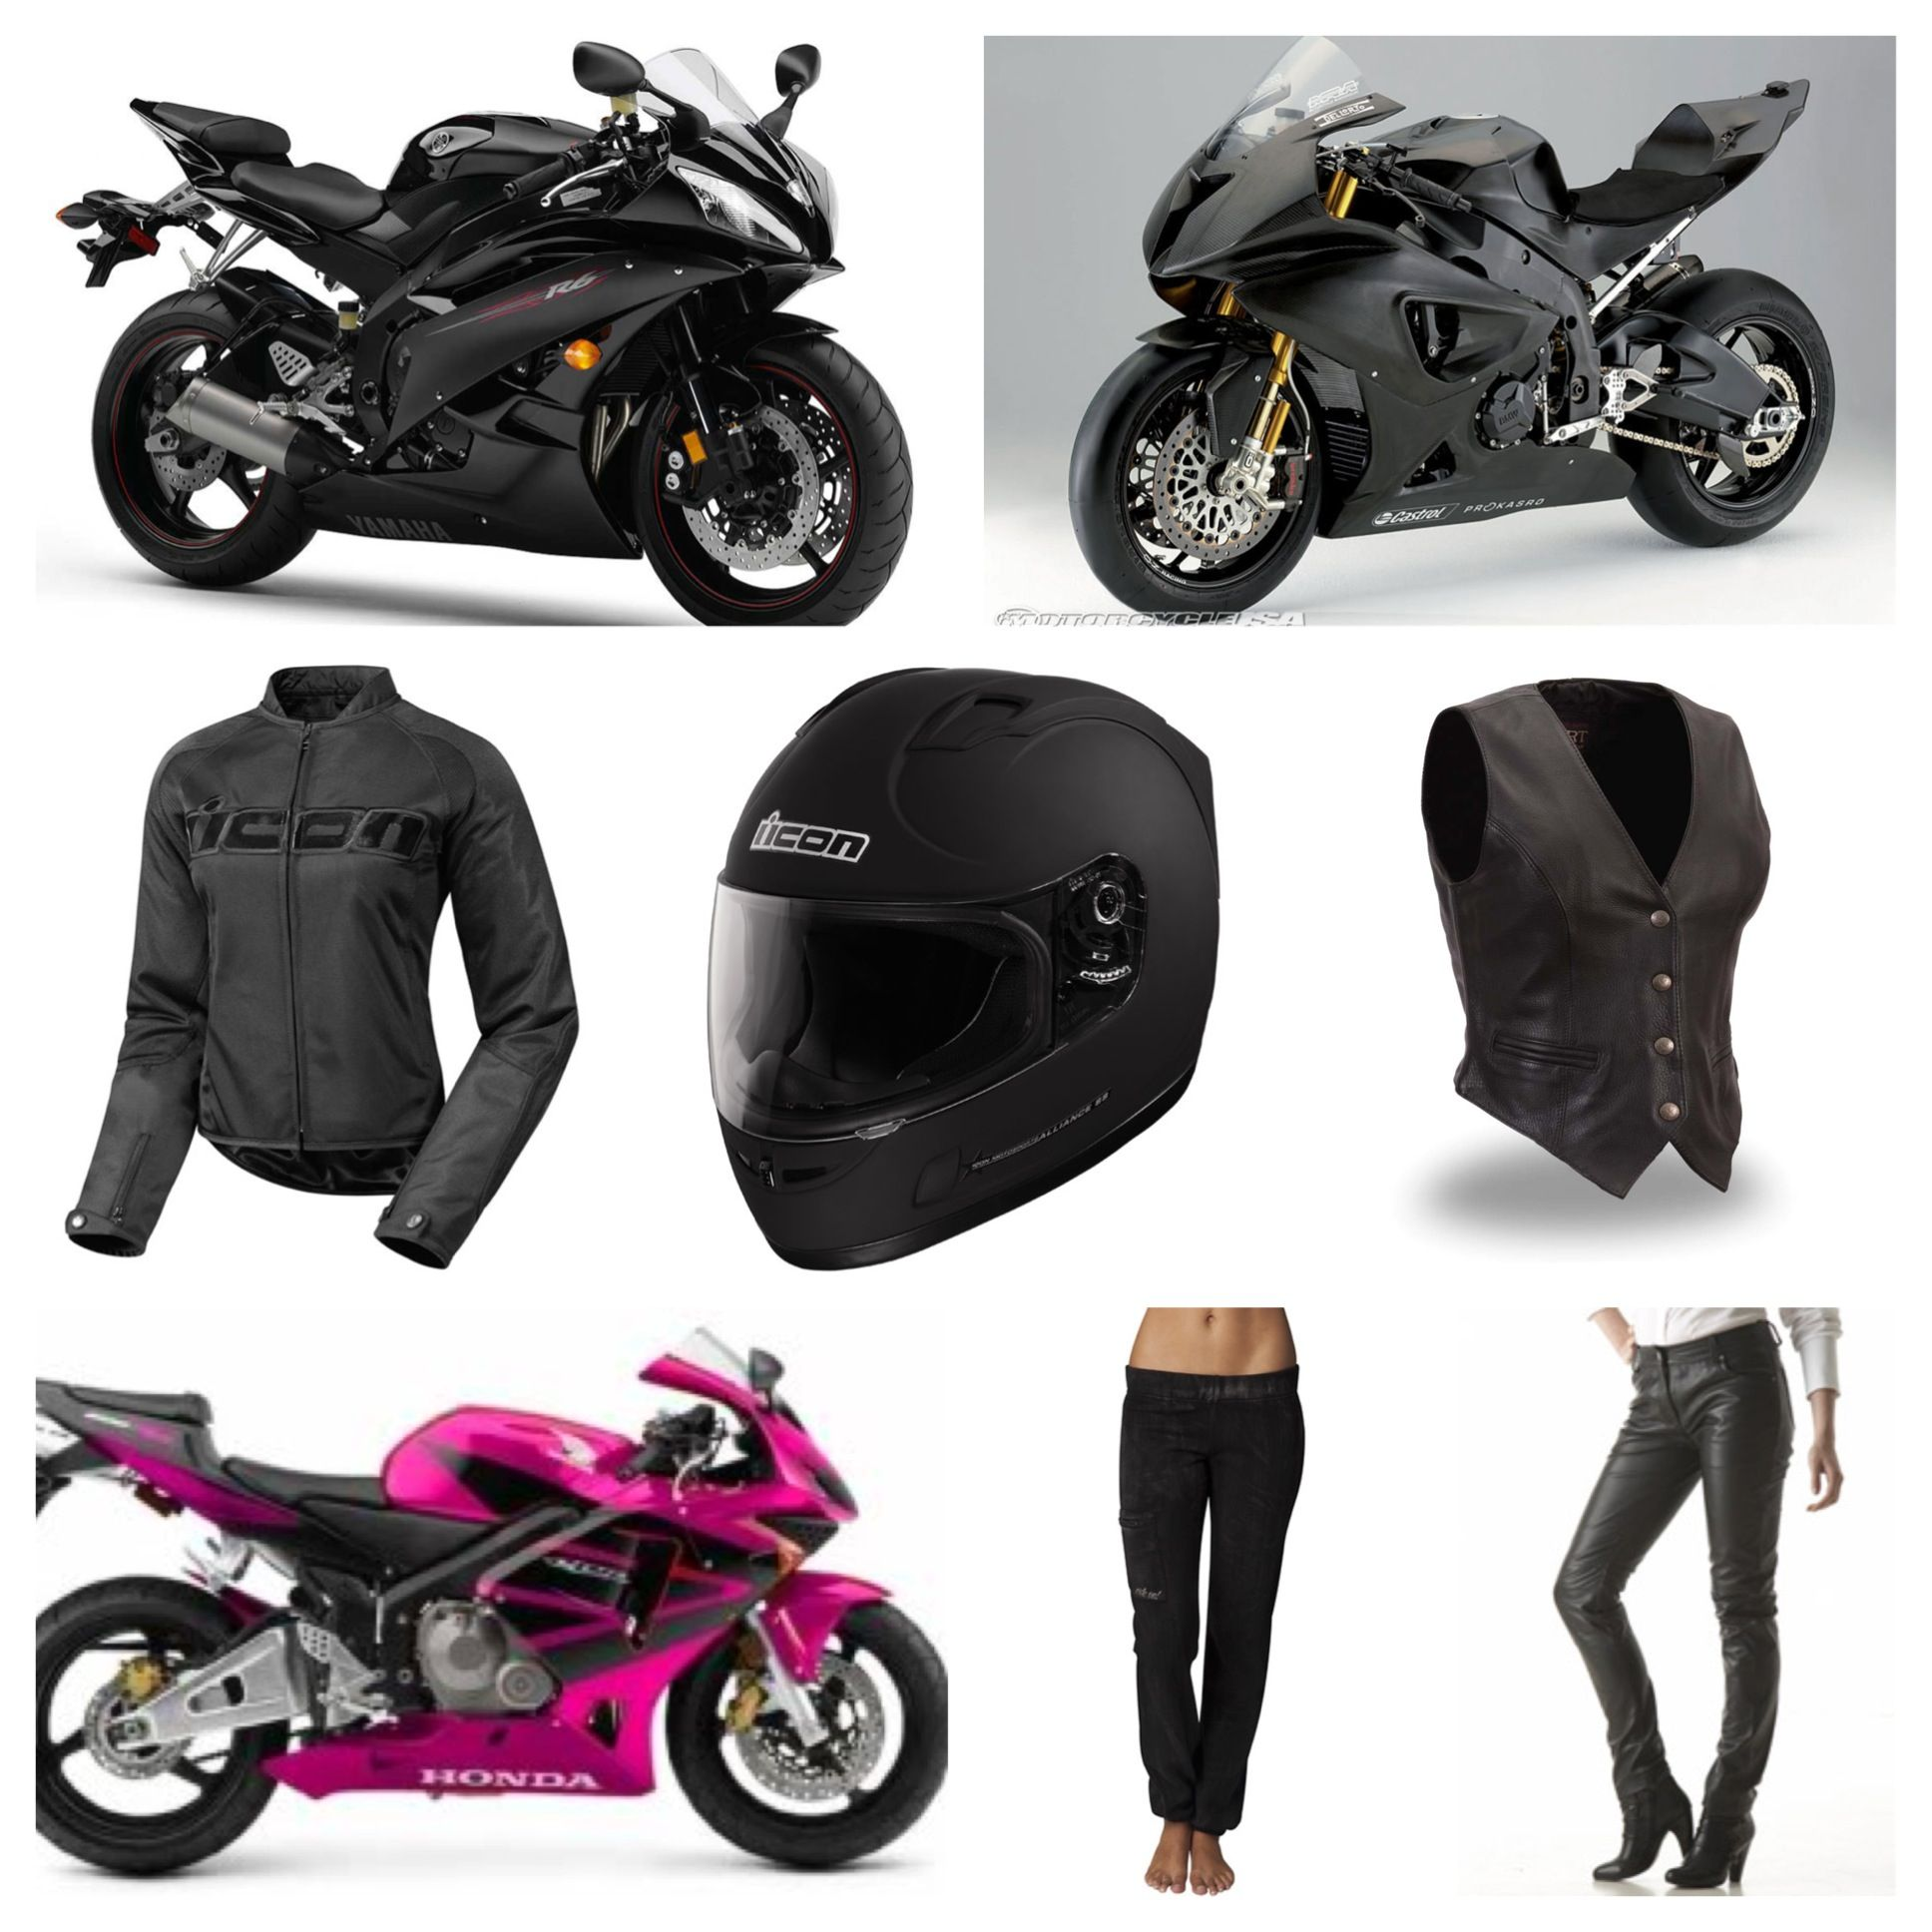 Street bike, crotch rocket, performance motorcycle, sport